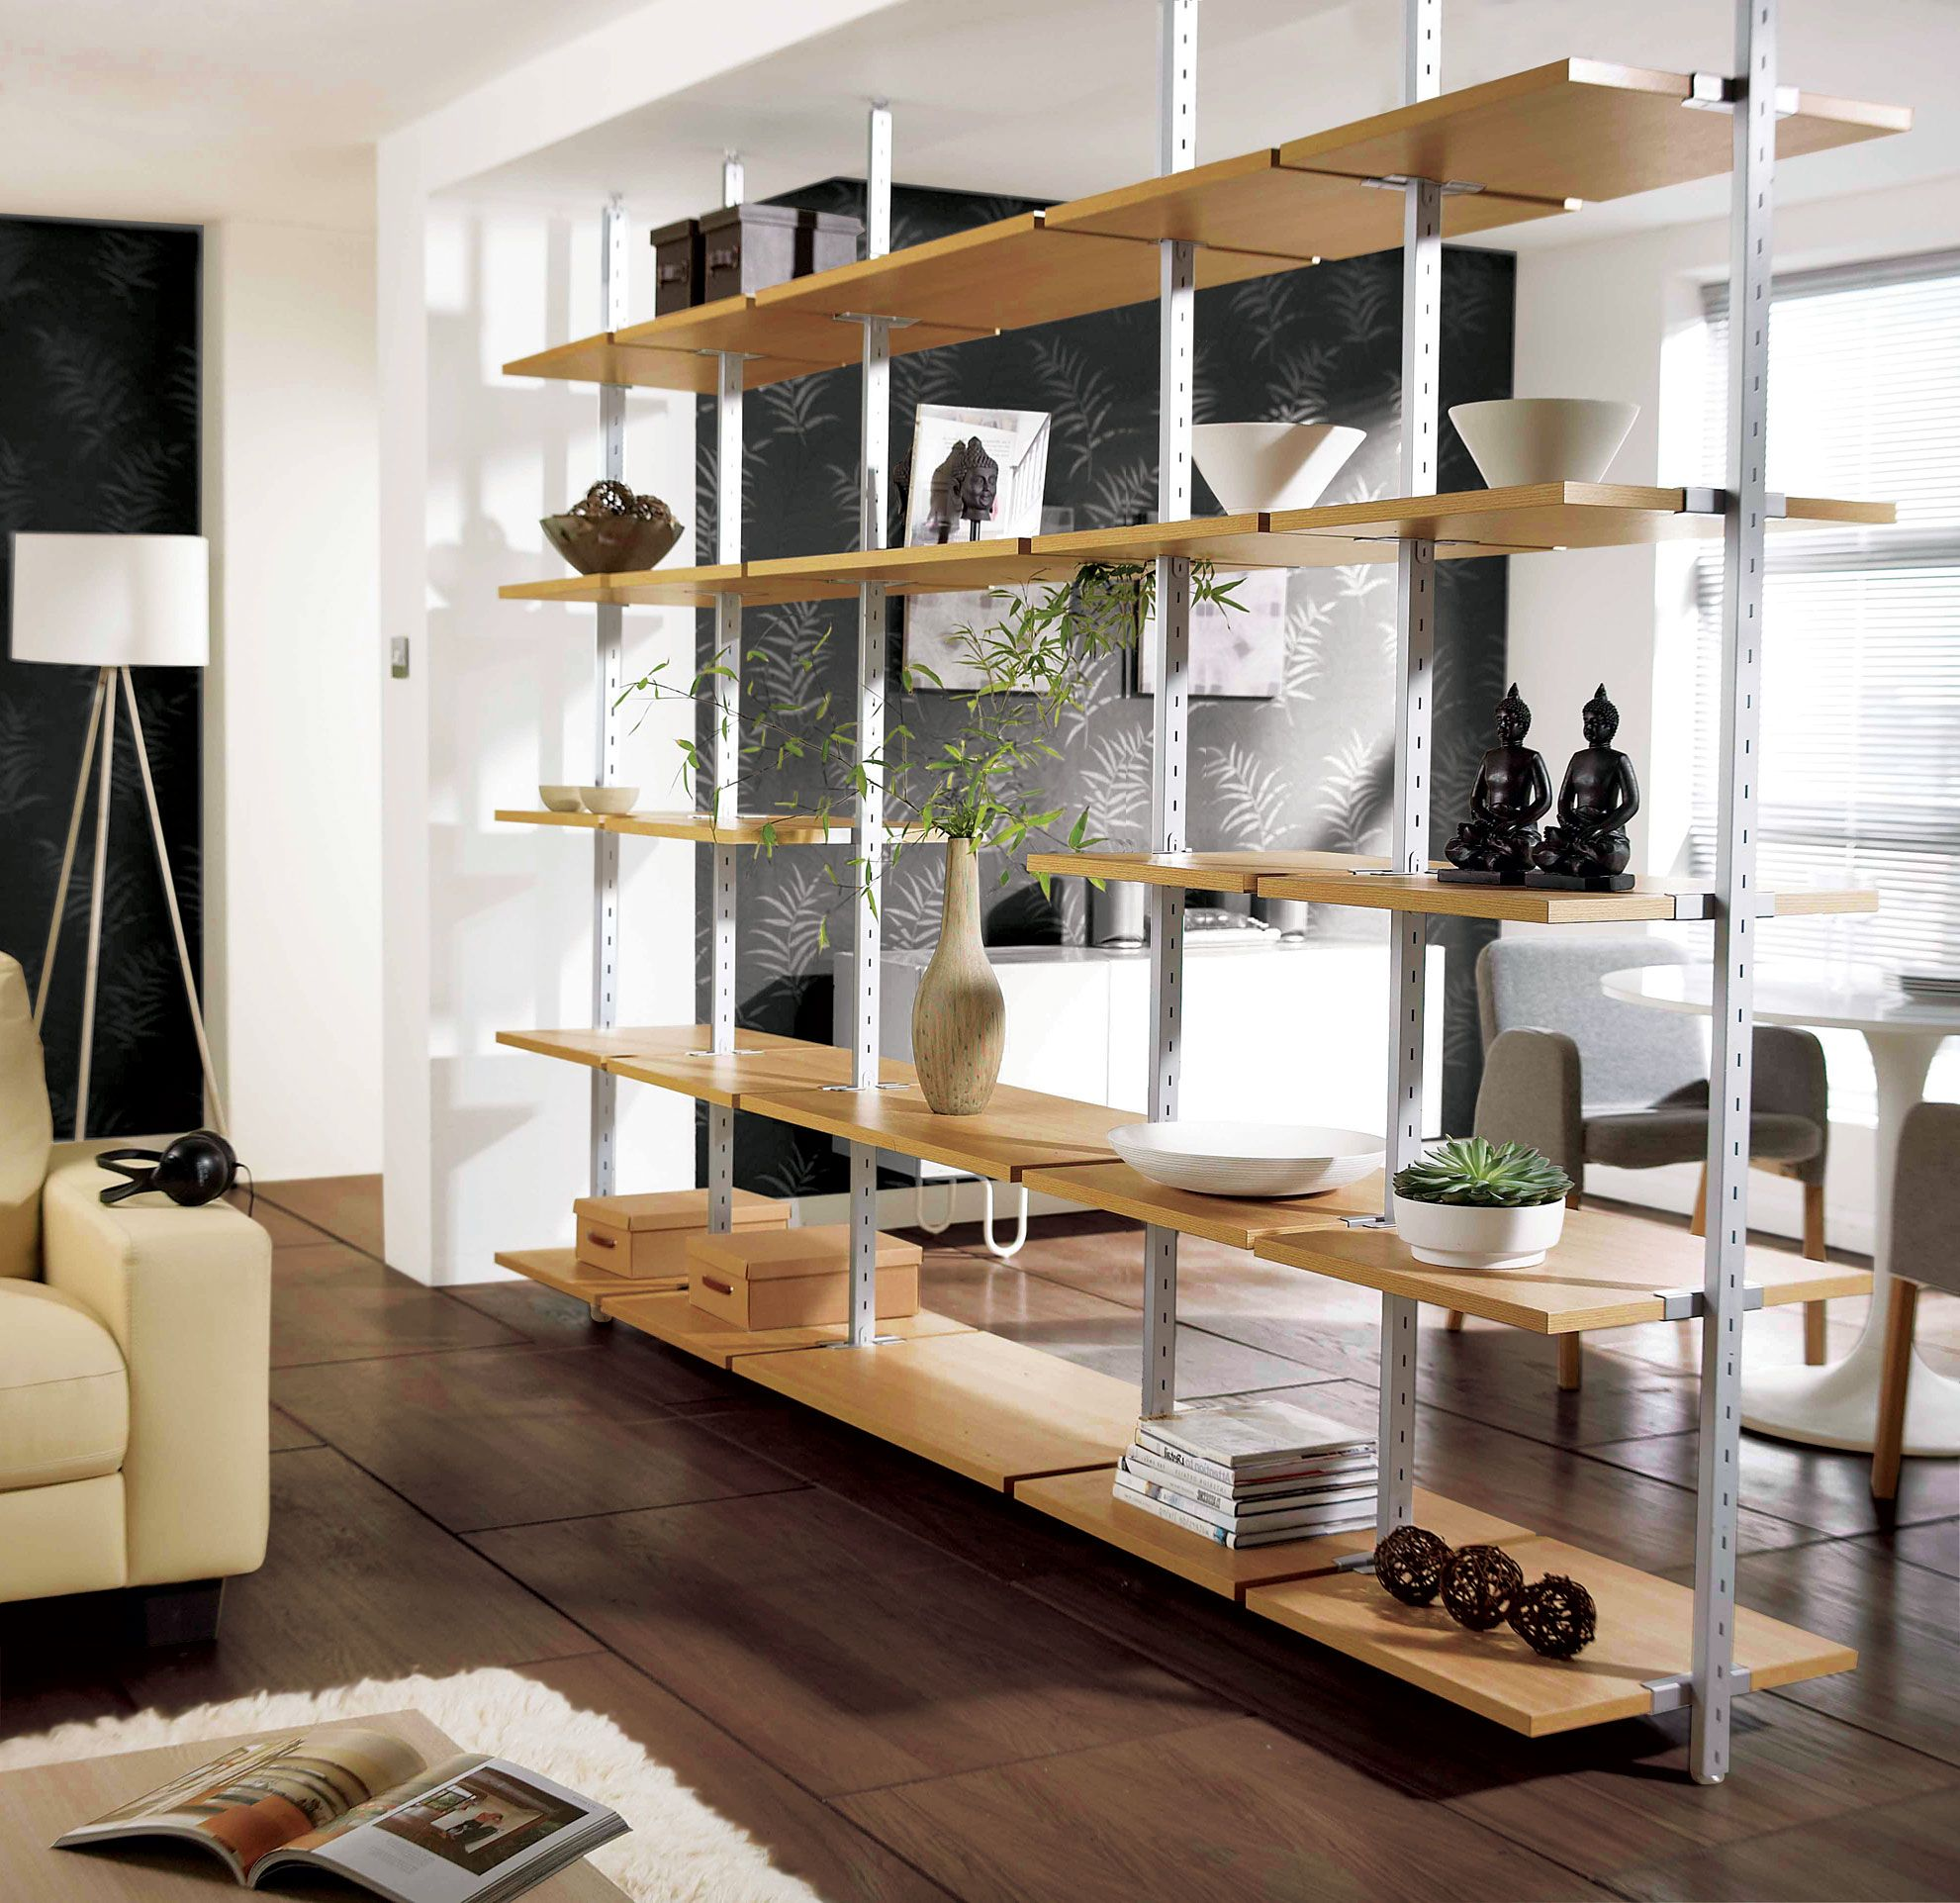 Shelving Unit To Divide Room Height From 2110mm To 2700mm Click The Image To Enlarge Flex Room Bedroom Design Wardrobe Furniture